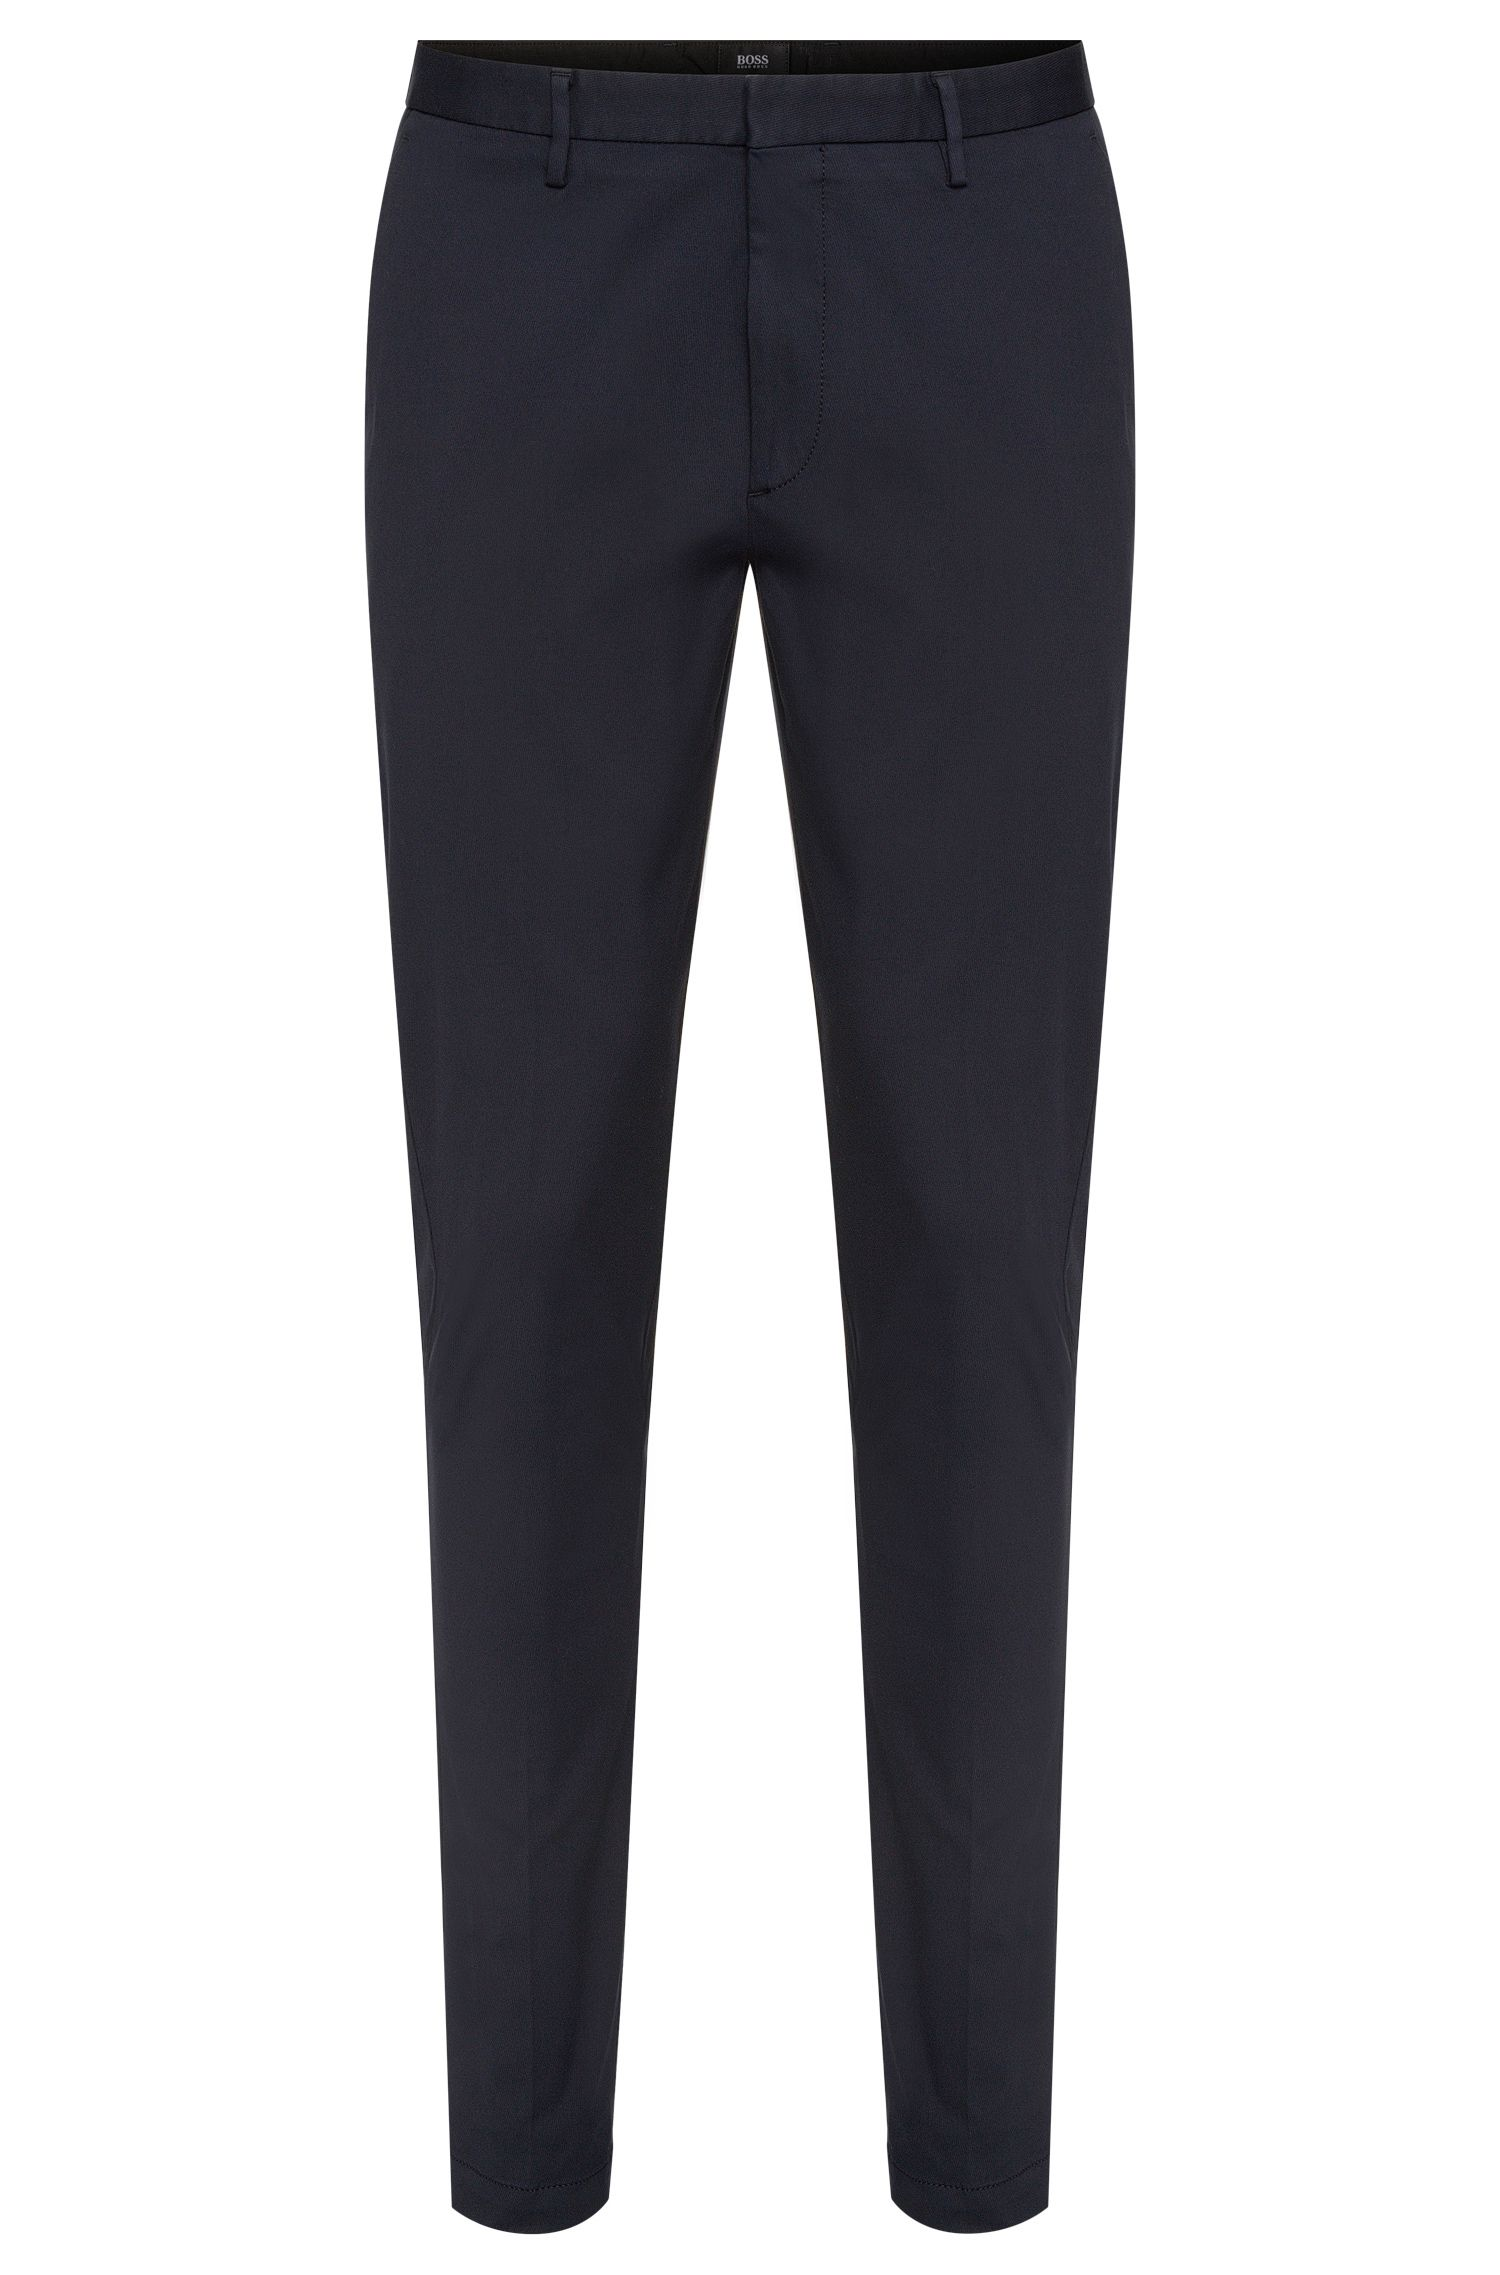 Plain-coloured slim-fit trousers in cotton blend: 'Kaito3-W'